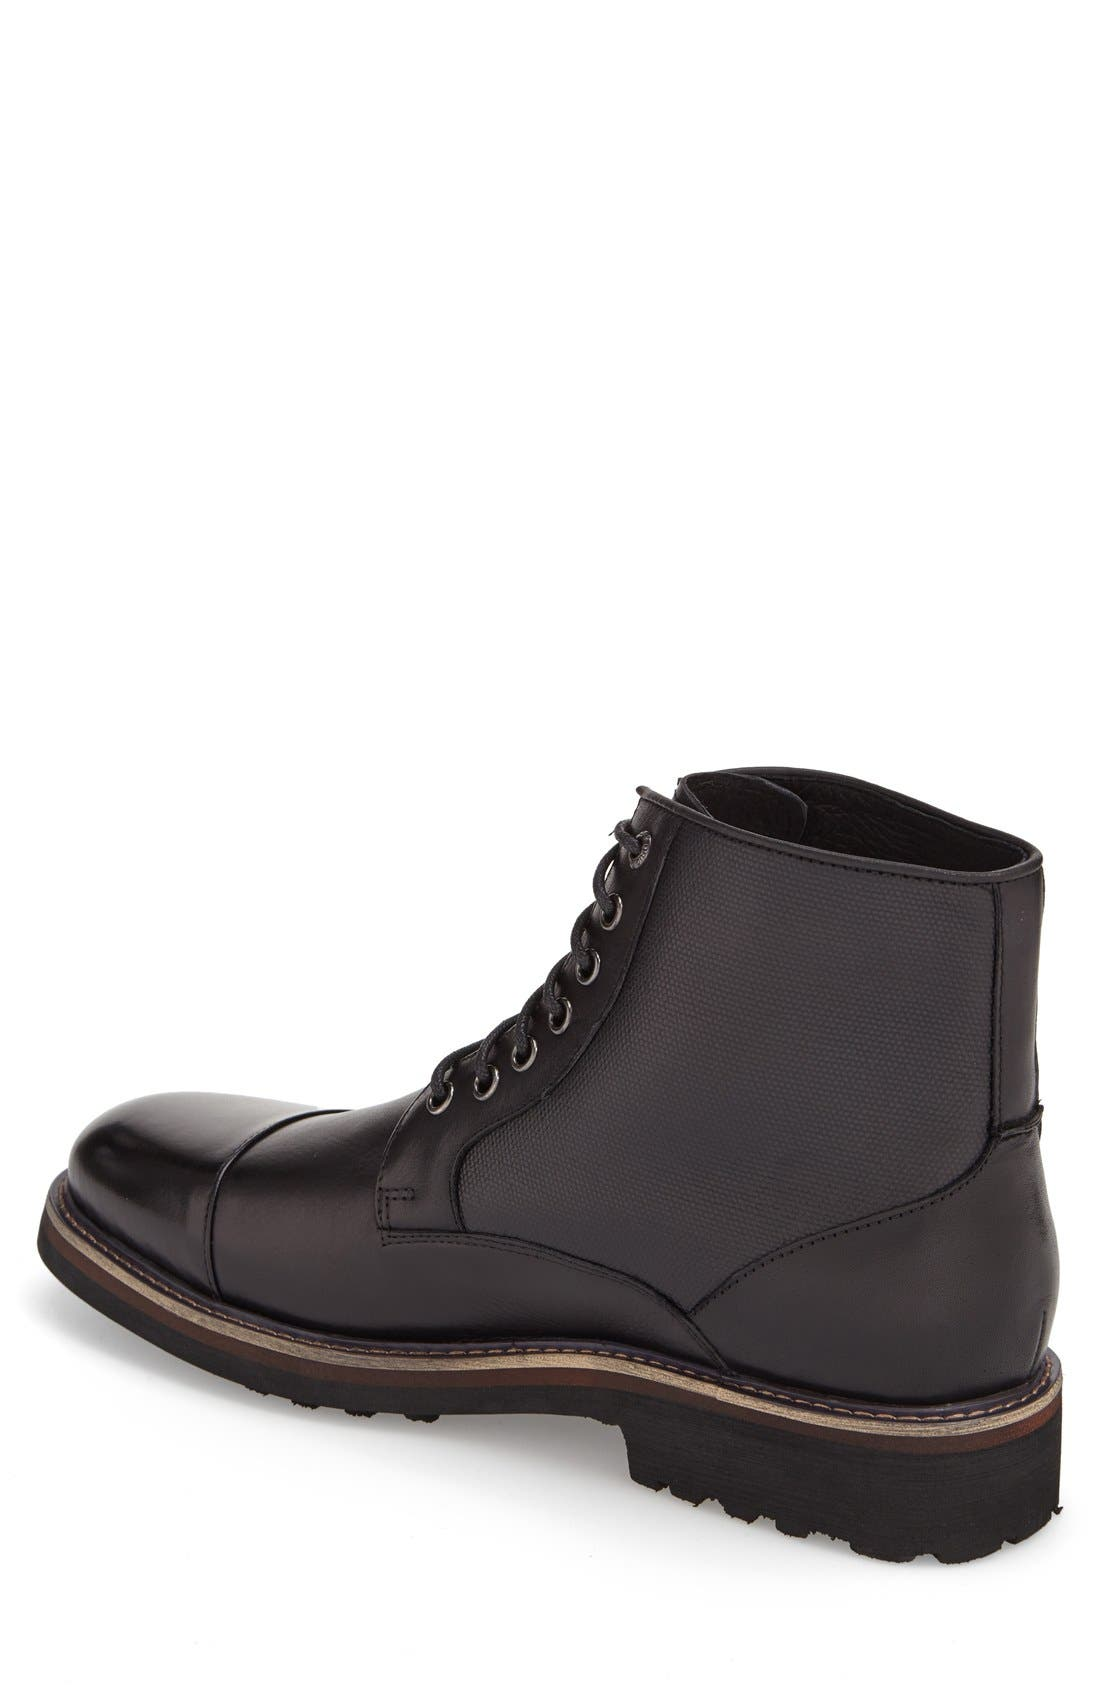 'Northstar' Cap Toe Boot,                             Alternate thumbnail 2, color,                             Black Leather